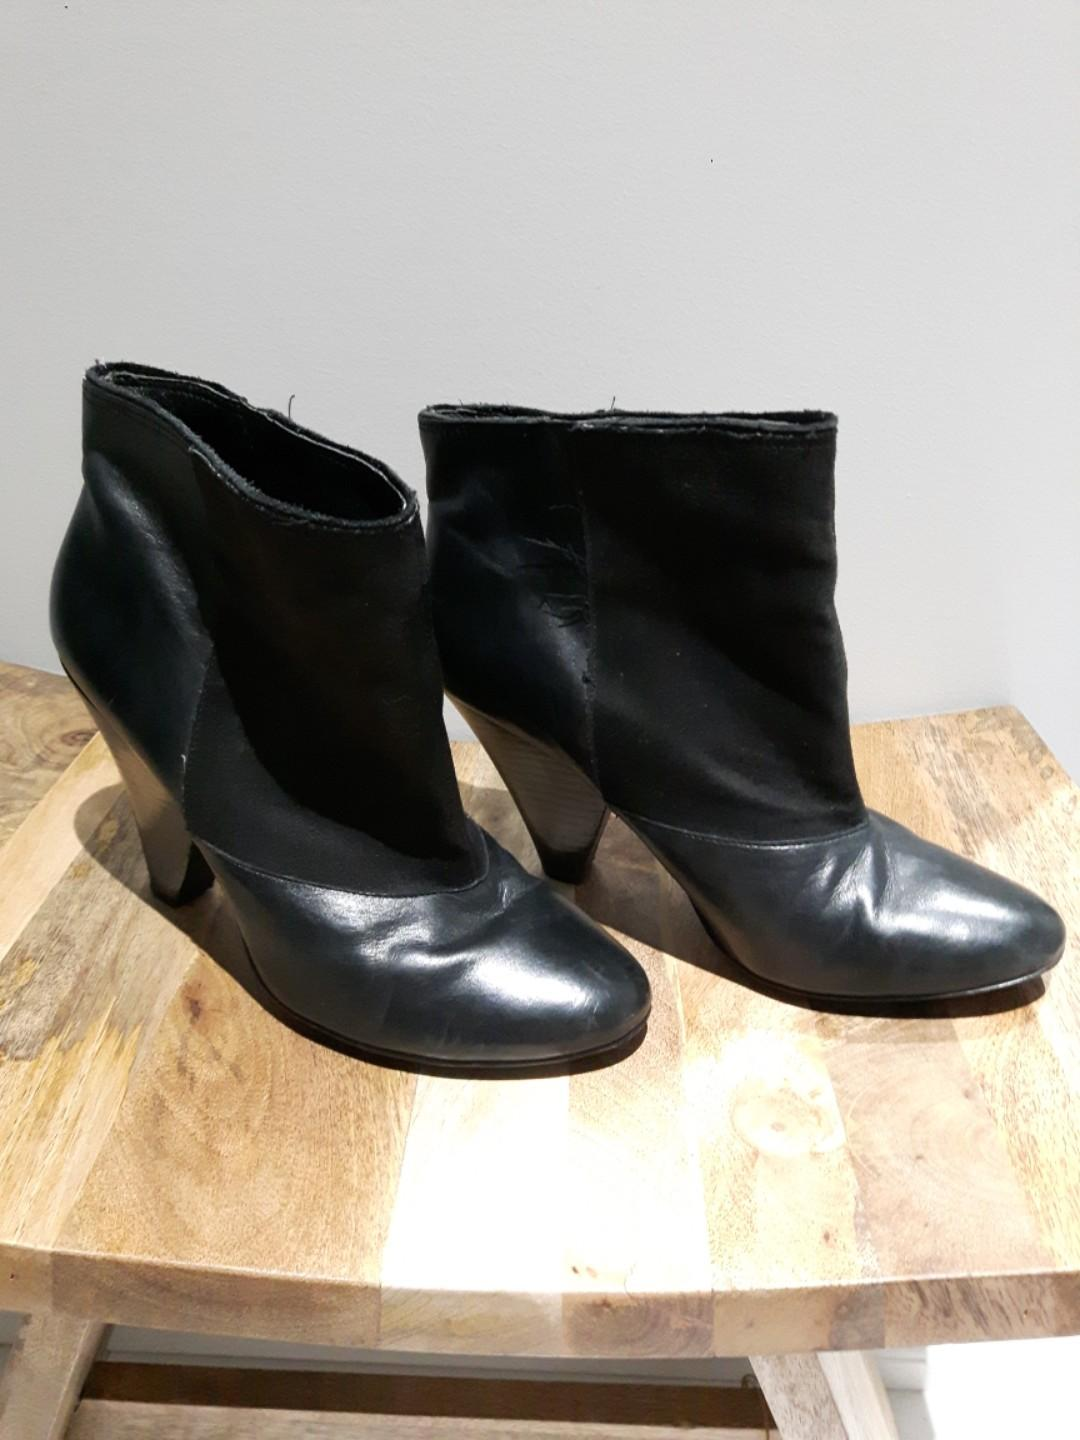 LOWERED: Black AnKle Booties (wide ankle/leg) Size 8